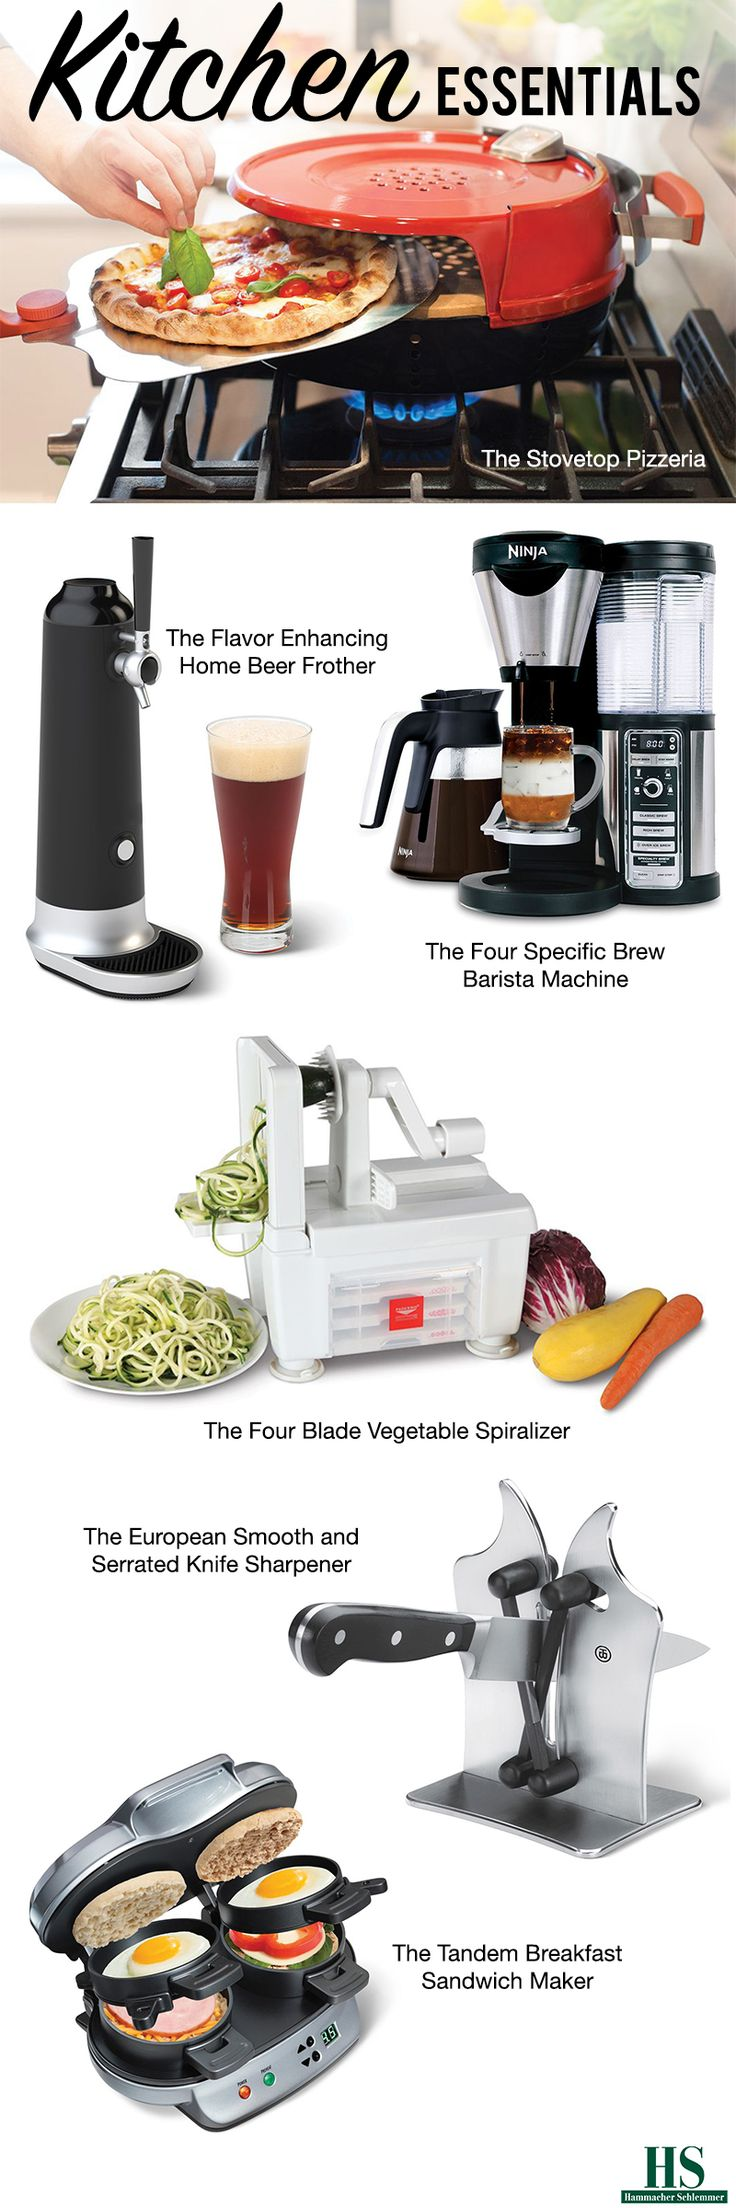 The Best, The Only, and The Unexpected Kitchen Essentials from Hammacher Schlemmer.